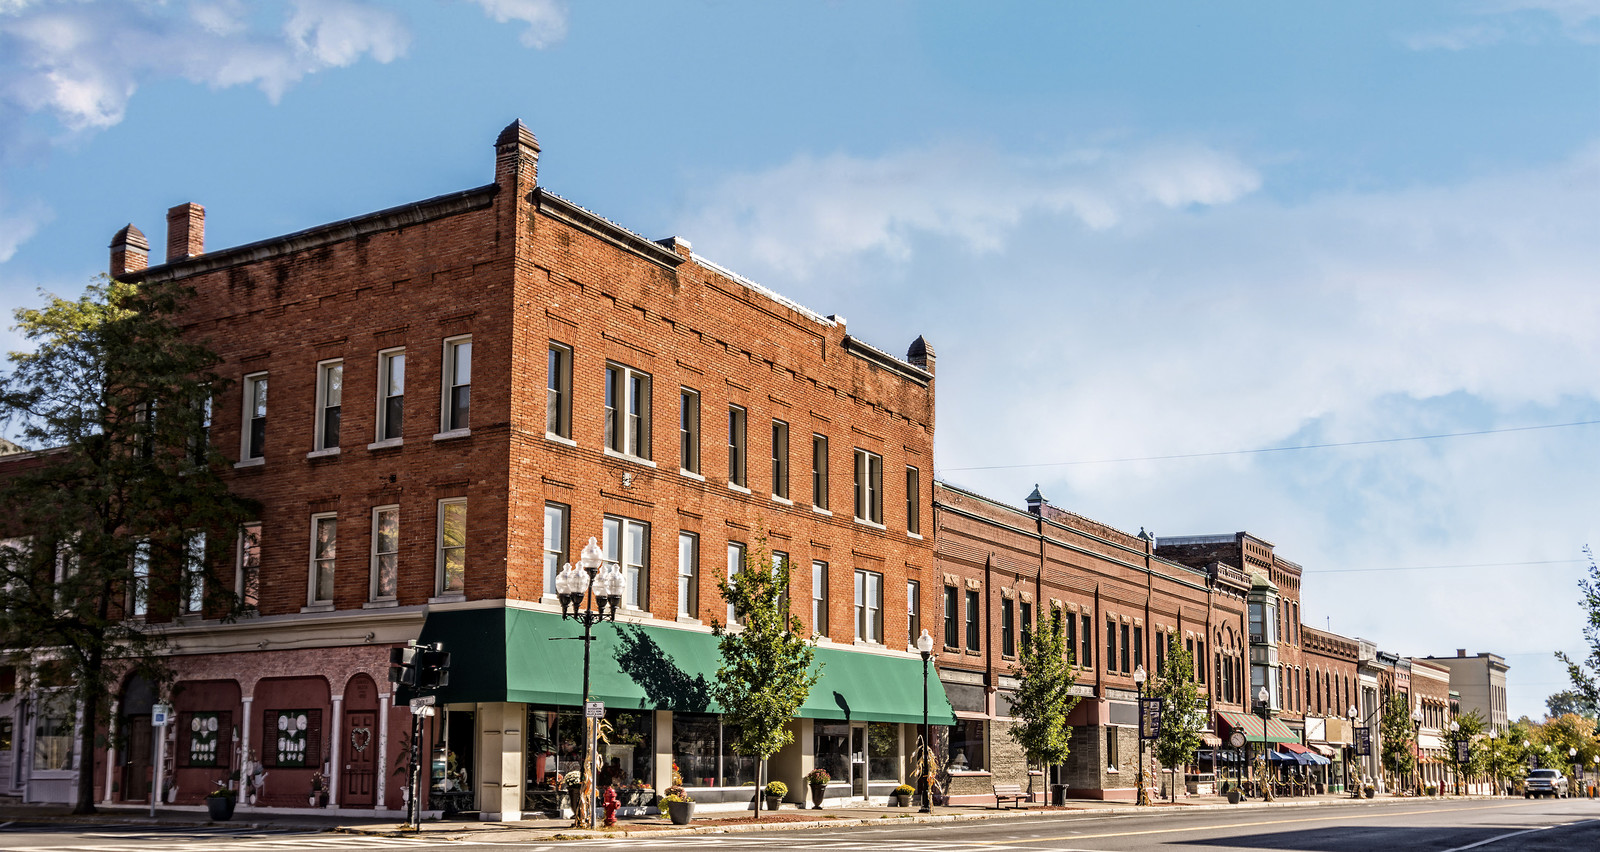 Small town with brick buildings lining the main street